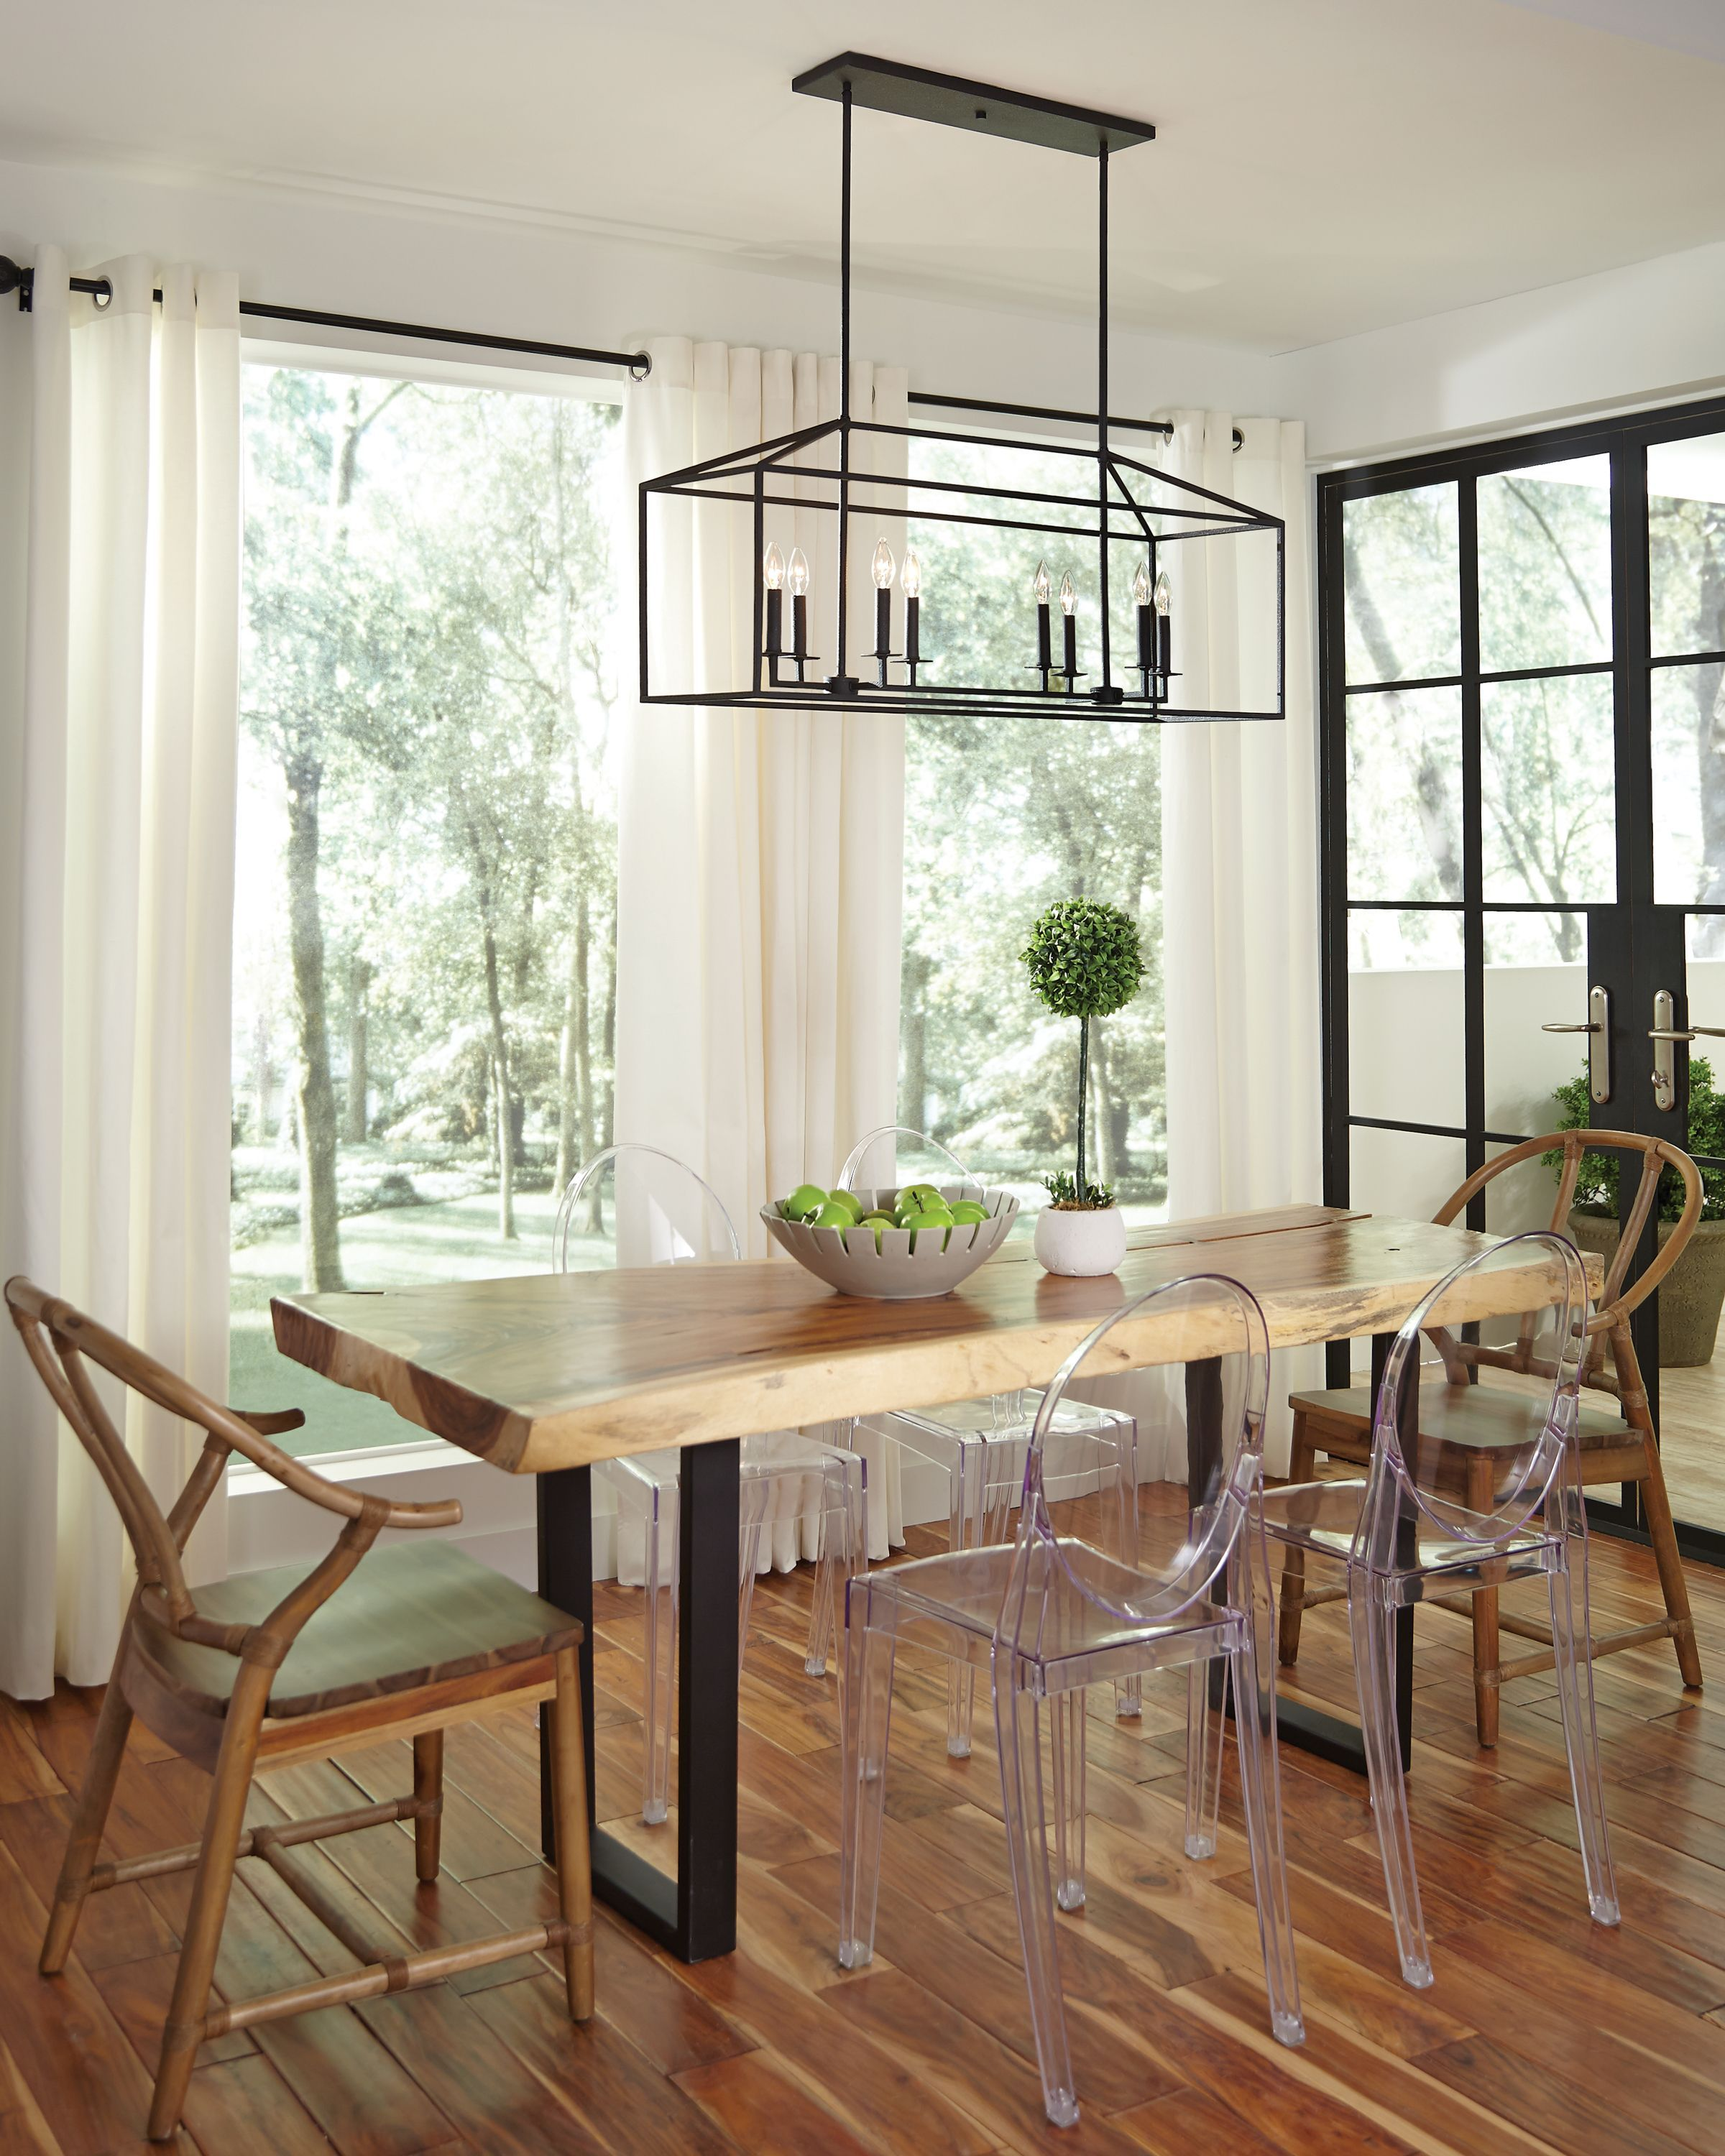 The Transitional Perryton Pendant Light Collection By Sea Gull Lighting